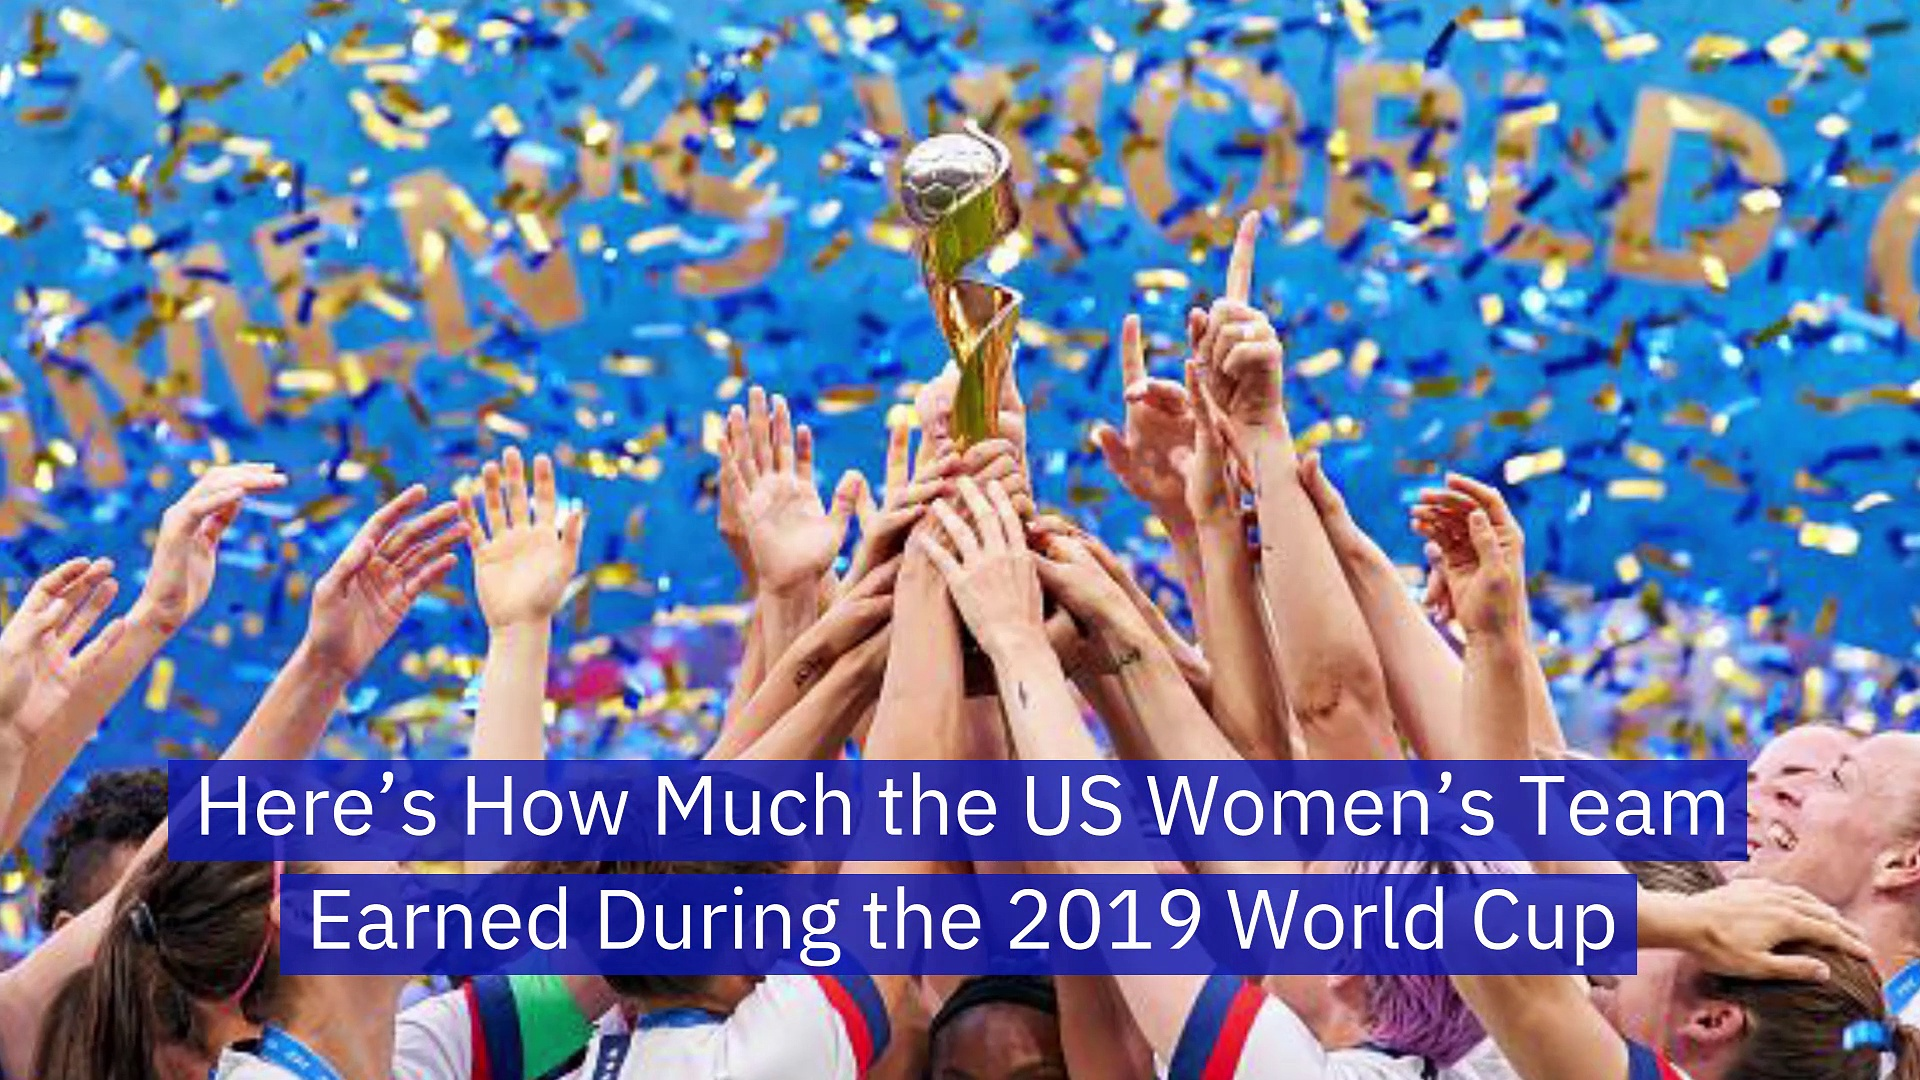 Here's How Much the US Women's Team Earned During the 2019 World Cup